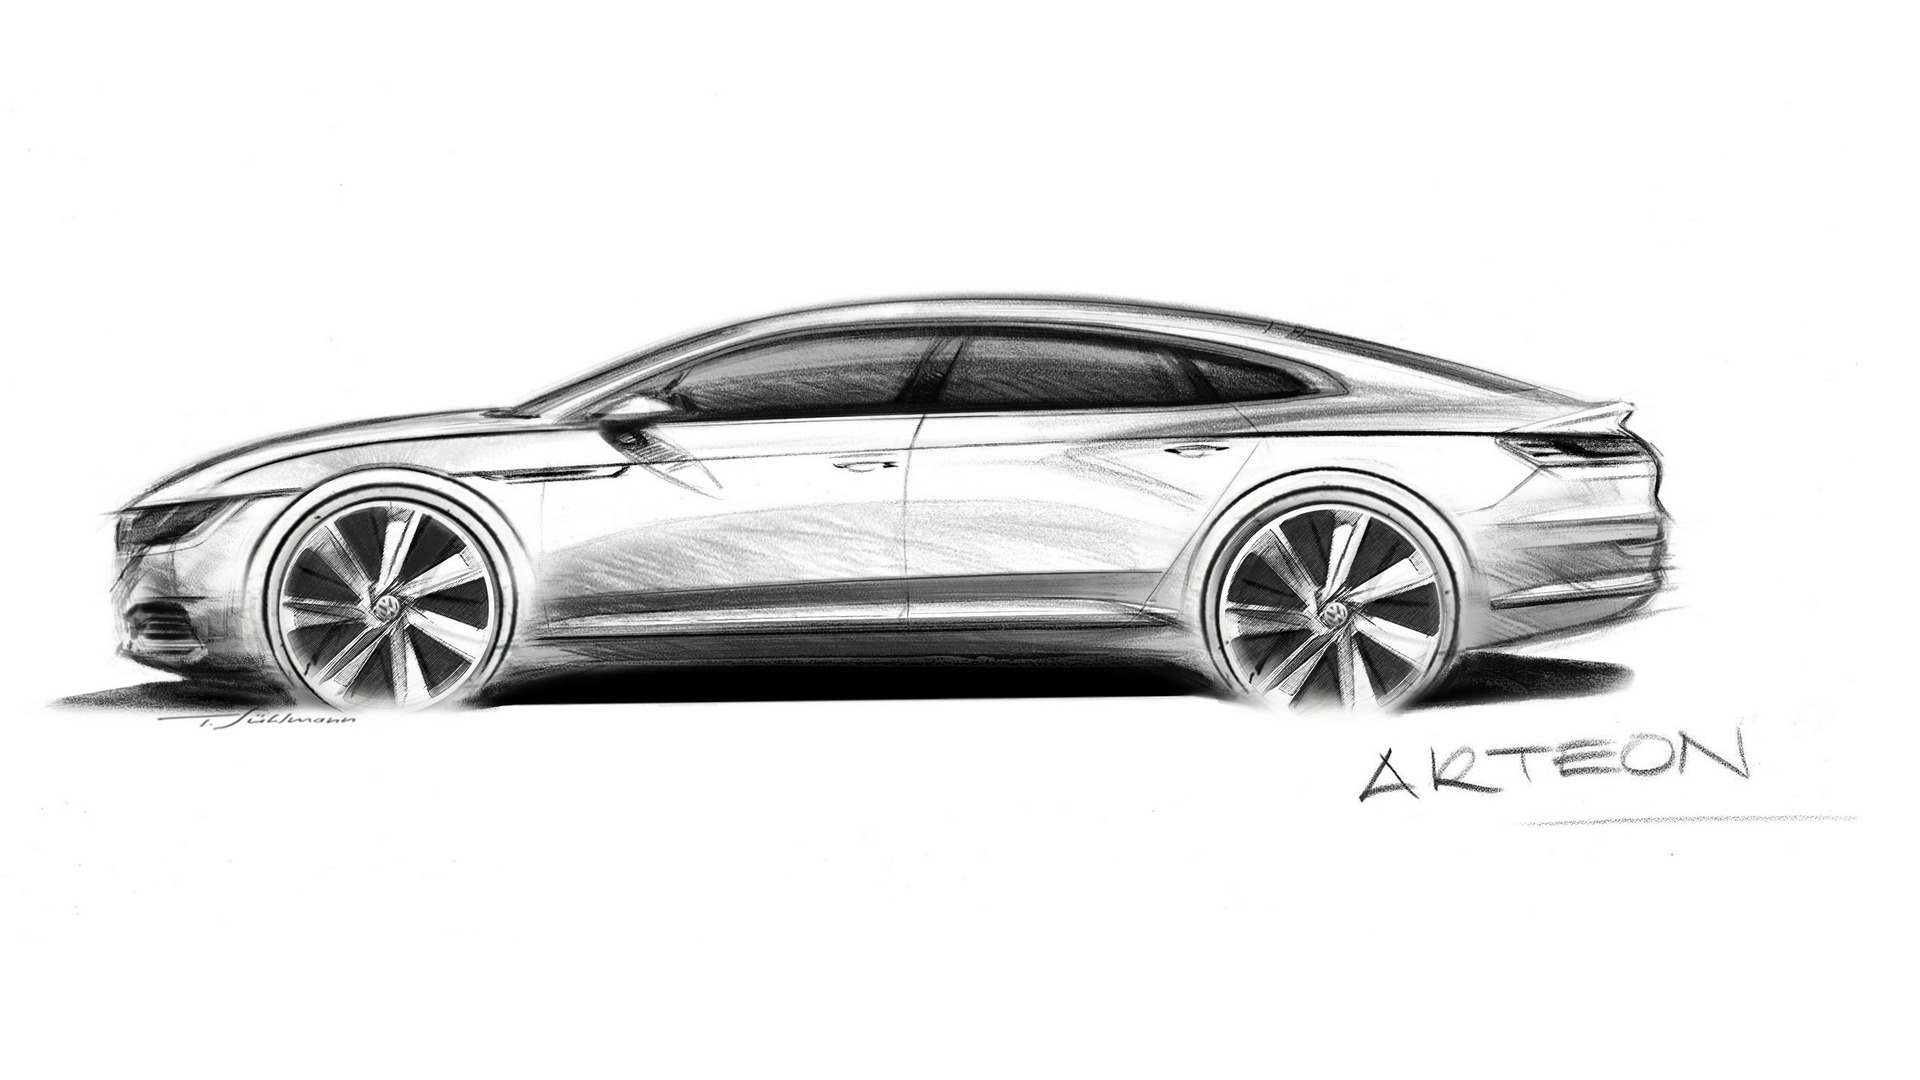 VW could make an Arteon shooting brake 1920x1080